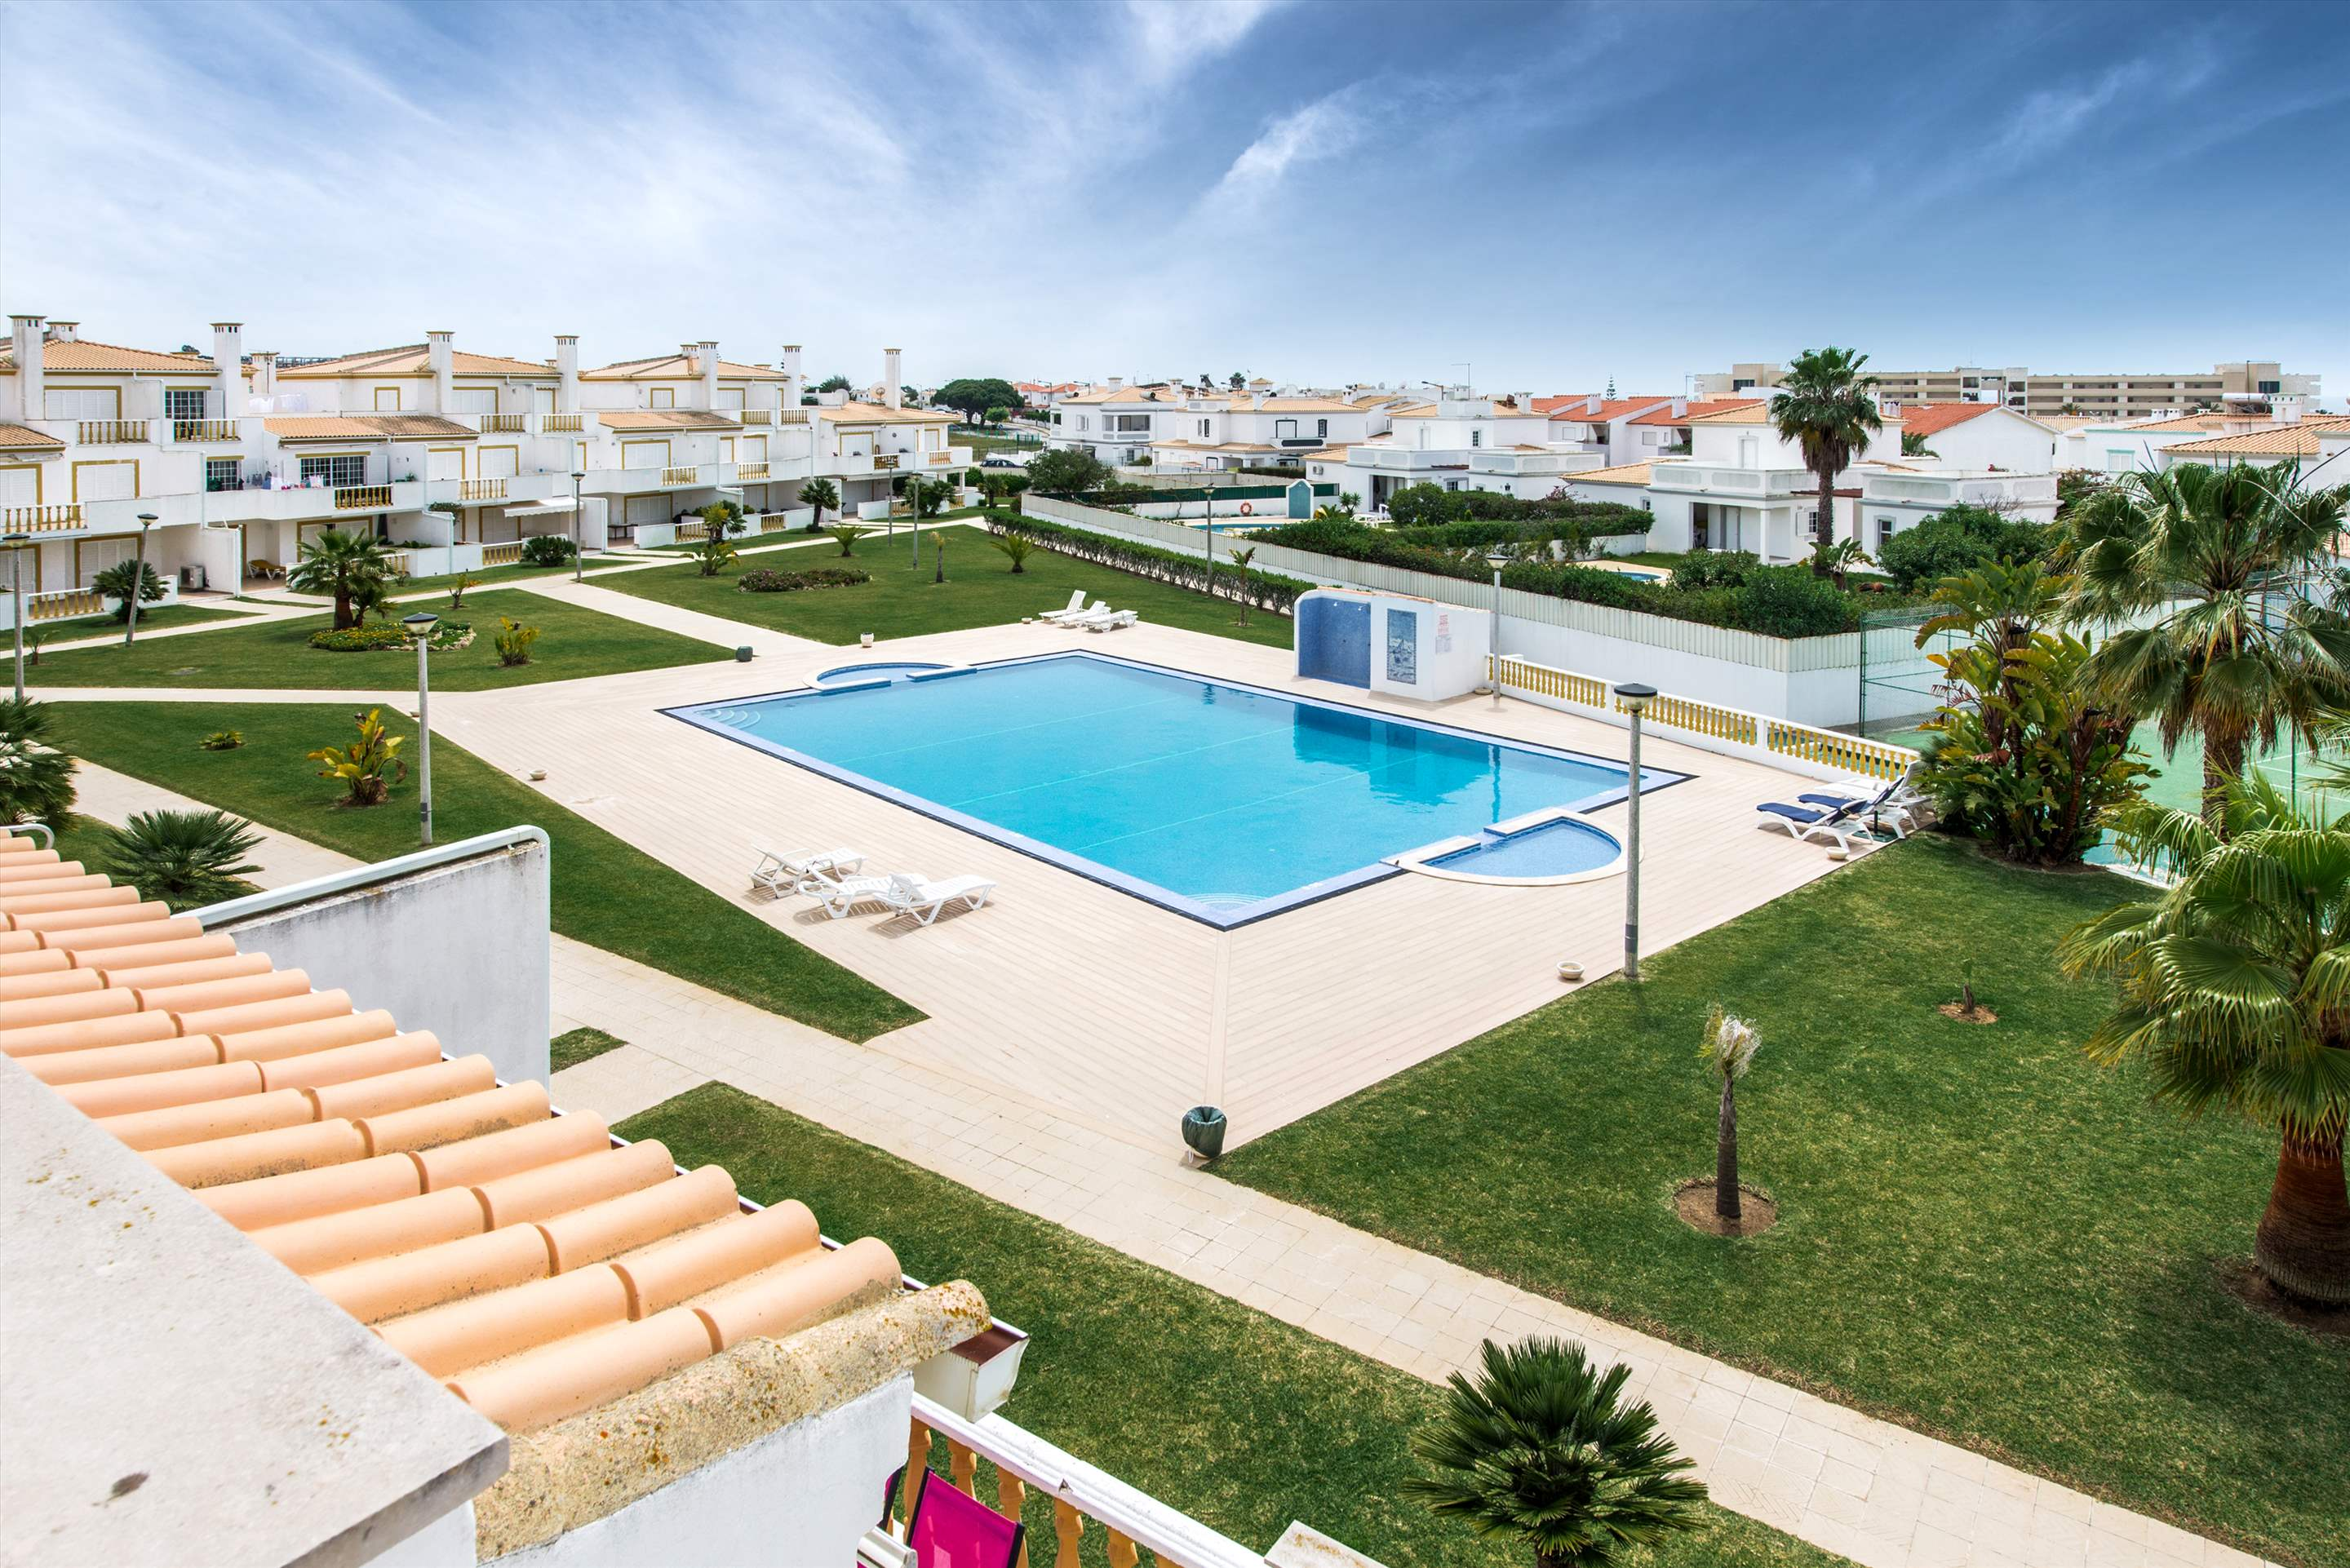 Apt O Monte, Up to 6 Persons, 3 bedroom apartment in Gale, Vale da Parra and Guia, Algarve Photo #23